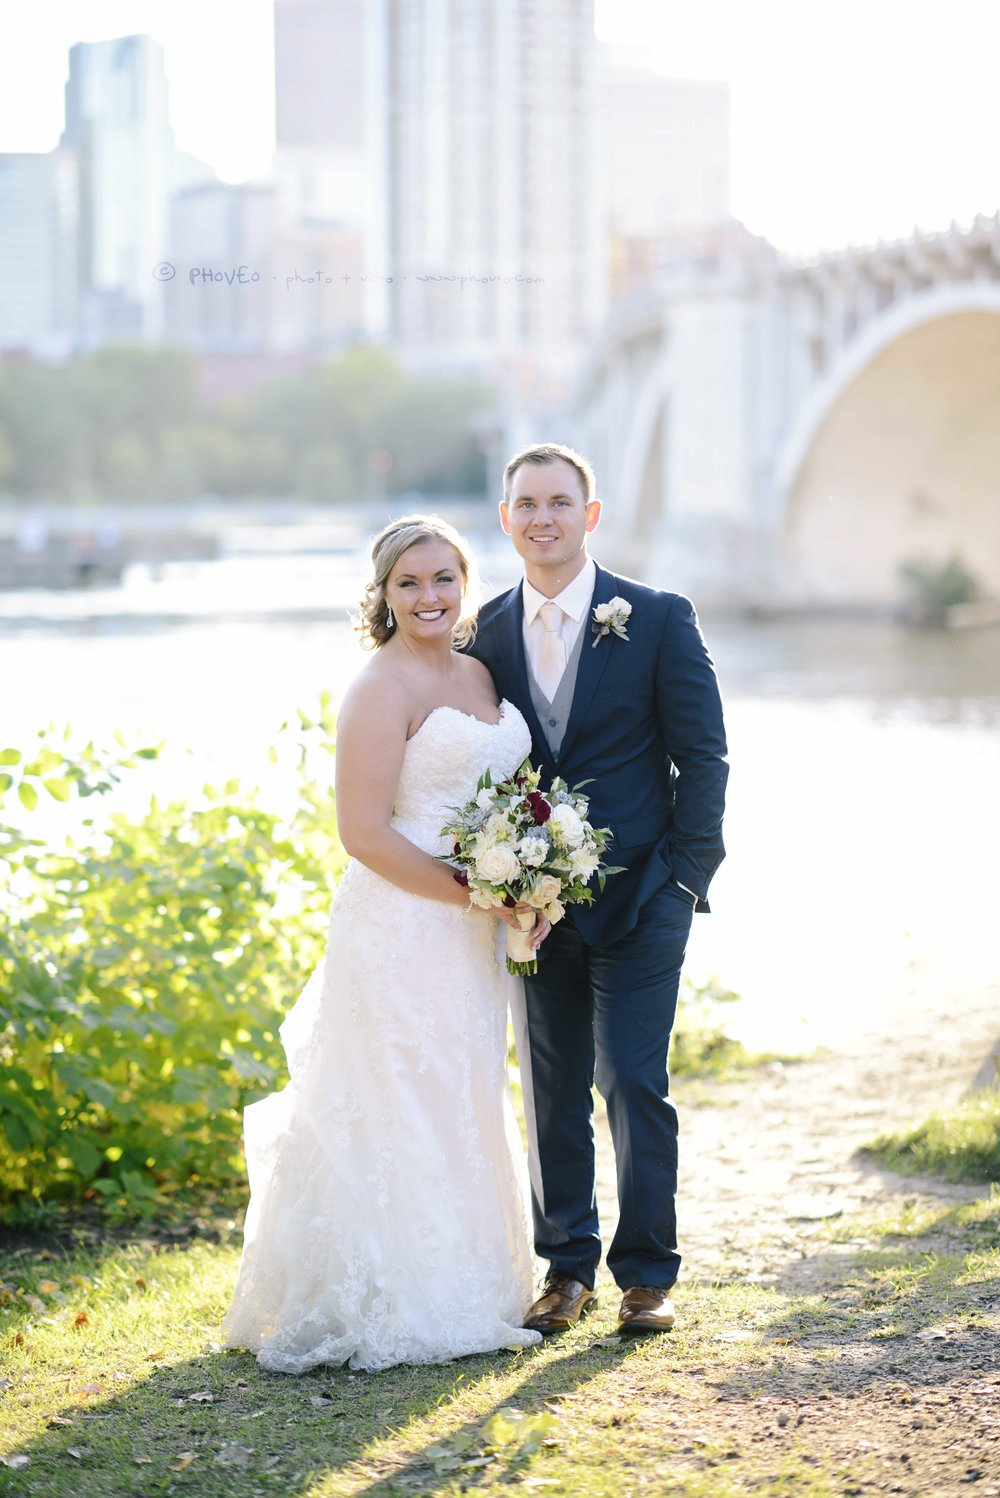 WM_20180922_Allie+Bryant_2.jpg